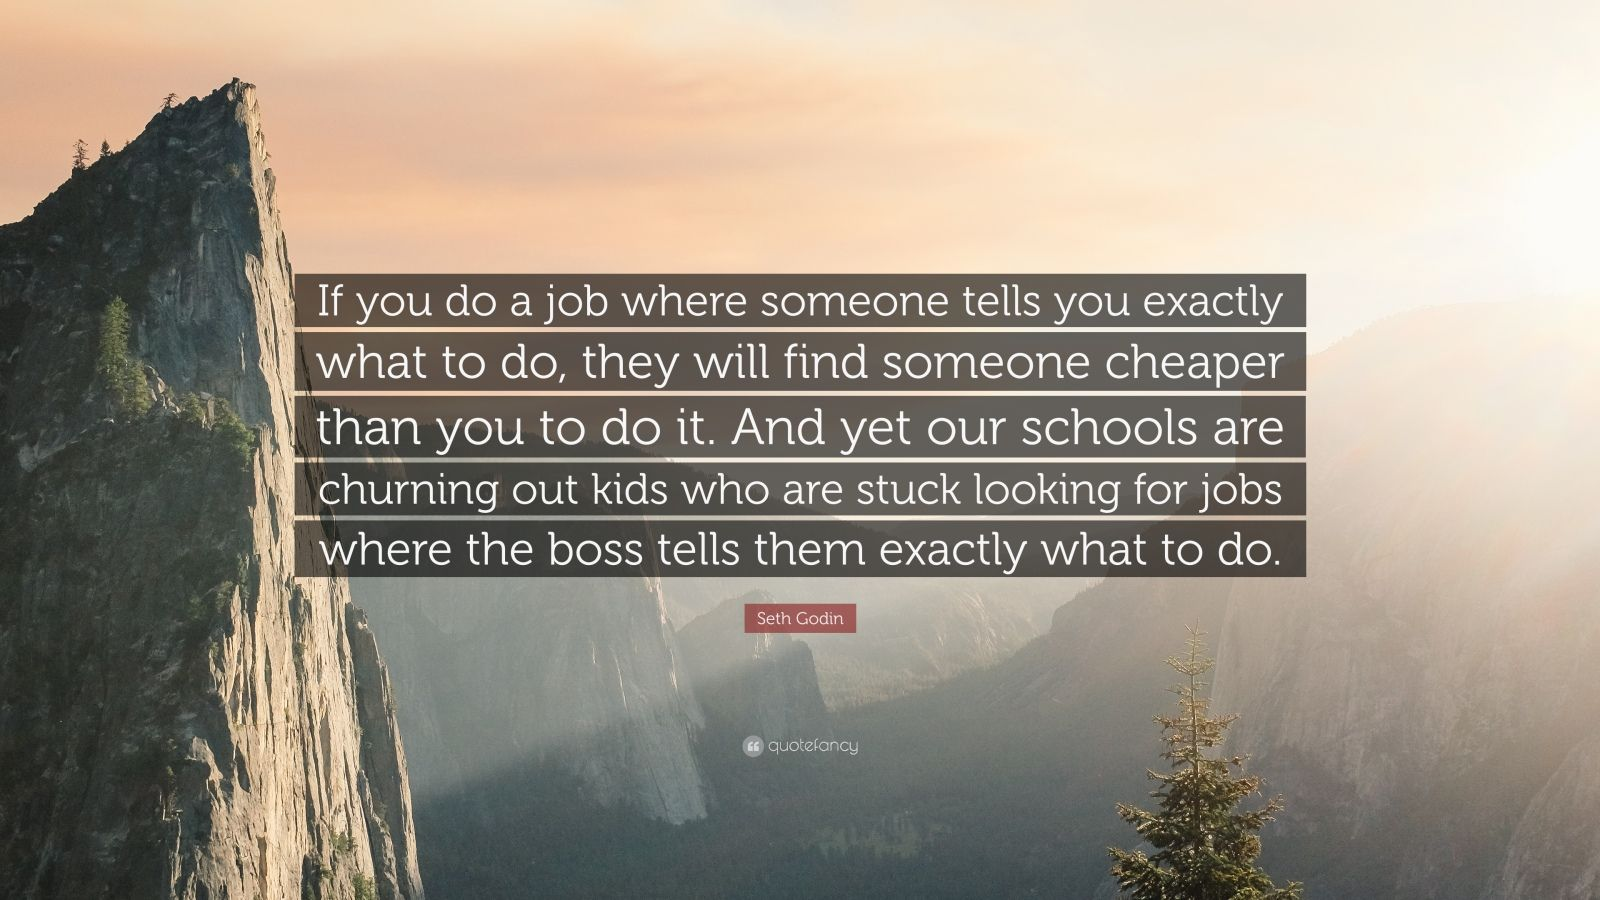 """Seth Godin Quote: """"If you do a job where someone tells you exactly what to do, they will find someone cheaper than you to do it. And yet our schools are churning out kids who are stuck looking for jobs where the boss tells them exactly what to do."""""""